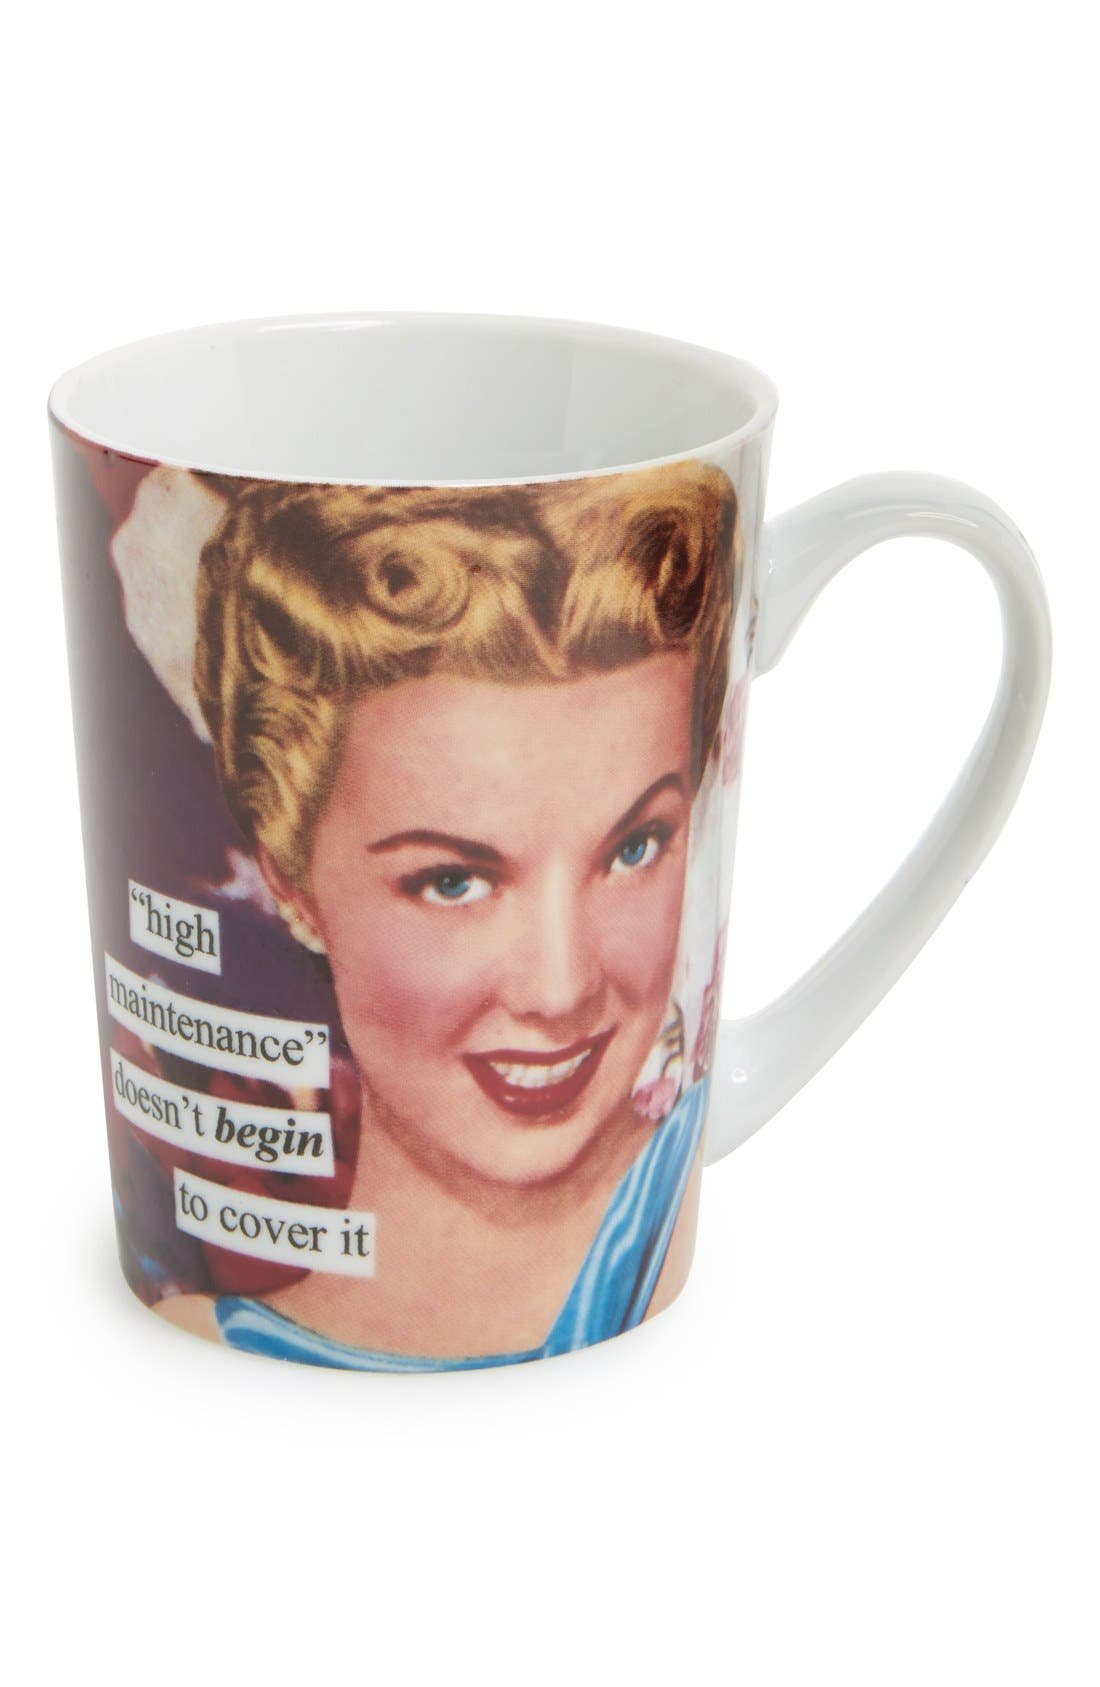 Alternate Image 1 Selected - Anne Taintor 'High Maintenance Doesn't BEGIN to Cover It' Mug